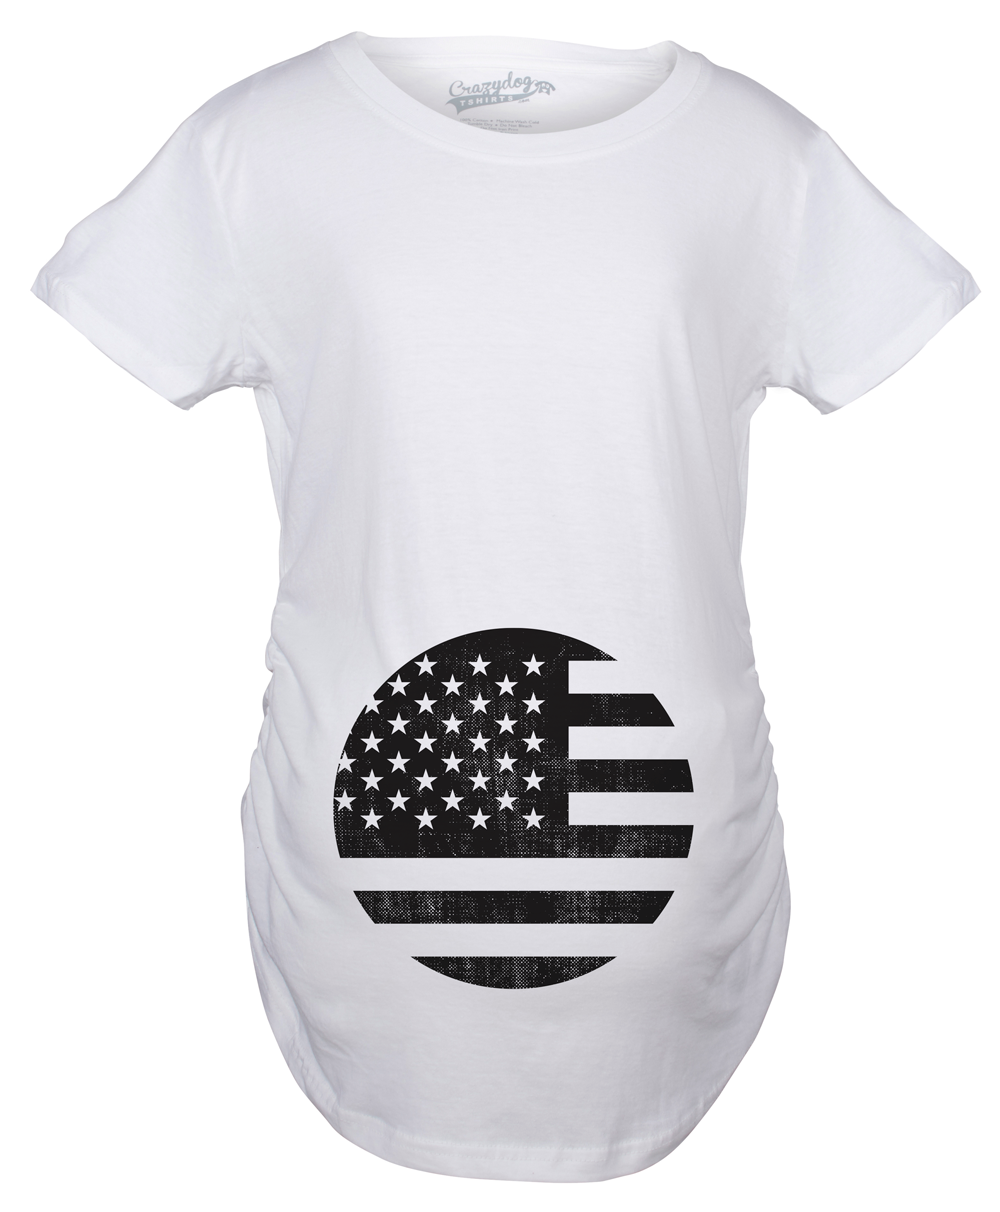 Maternity American Flag Pregnancy Tshirt Cool Patriotic USA Belly Bump Tee